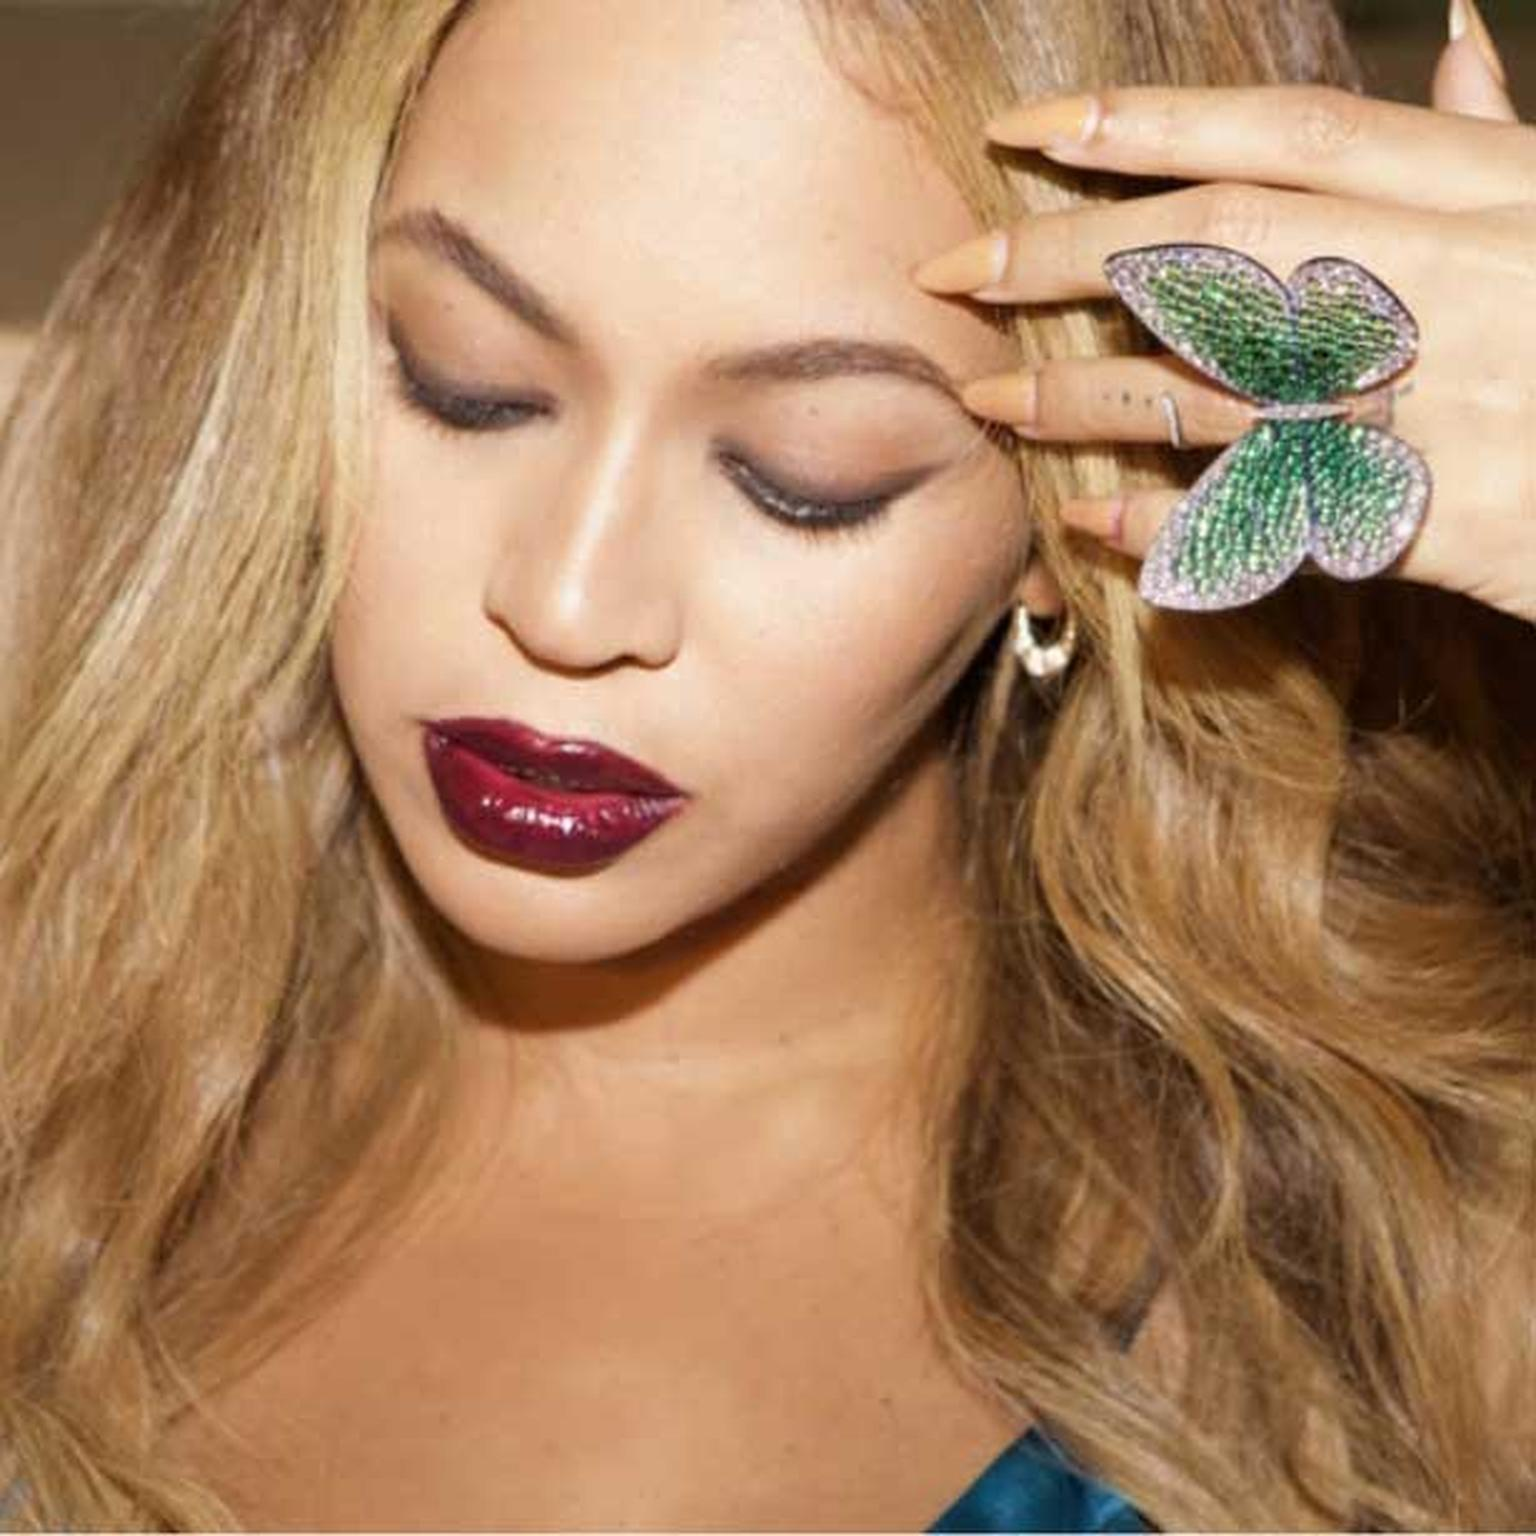 Beyonce wearing Papillon ring by Glenn Spiro in photo taken by Jay Z